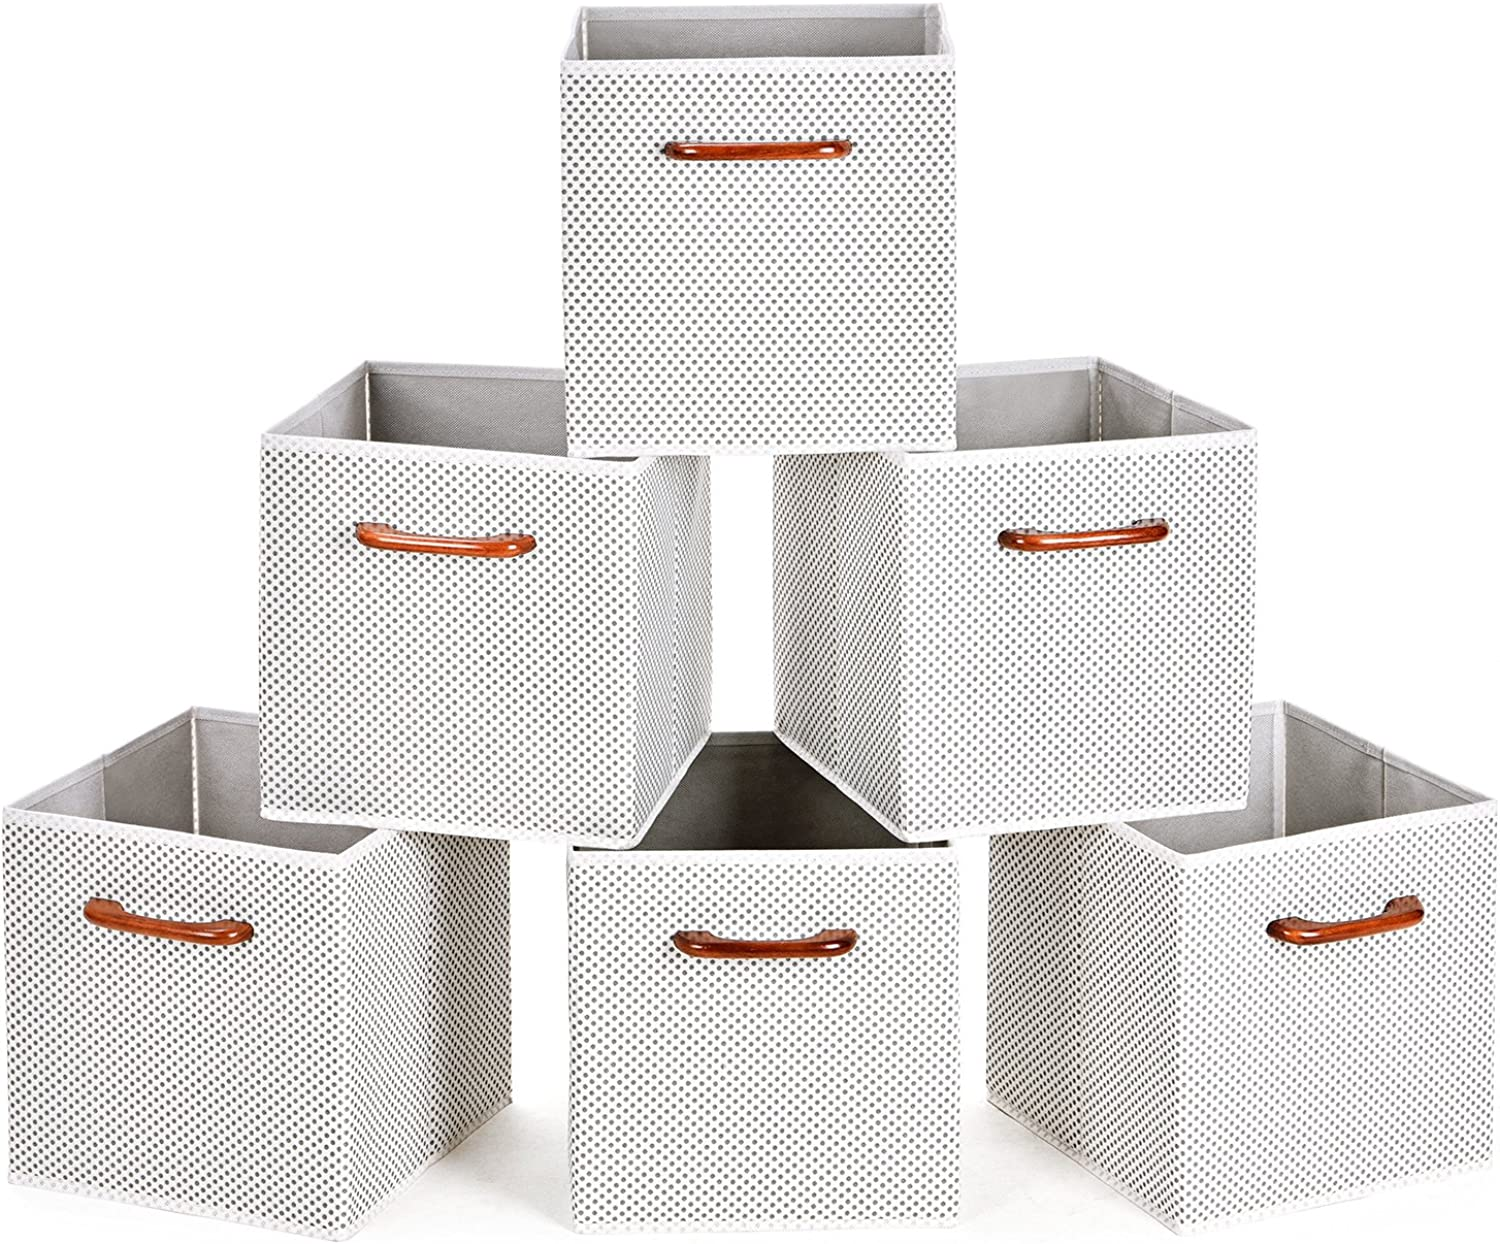 MaidMAX Cloth Storage Bins Cubes Baskets Containers with Wooden Handles for Home Closet Bedroom Drawers Organizers, Foldable, Grey Polka Dot, Set of 6